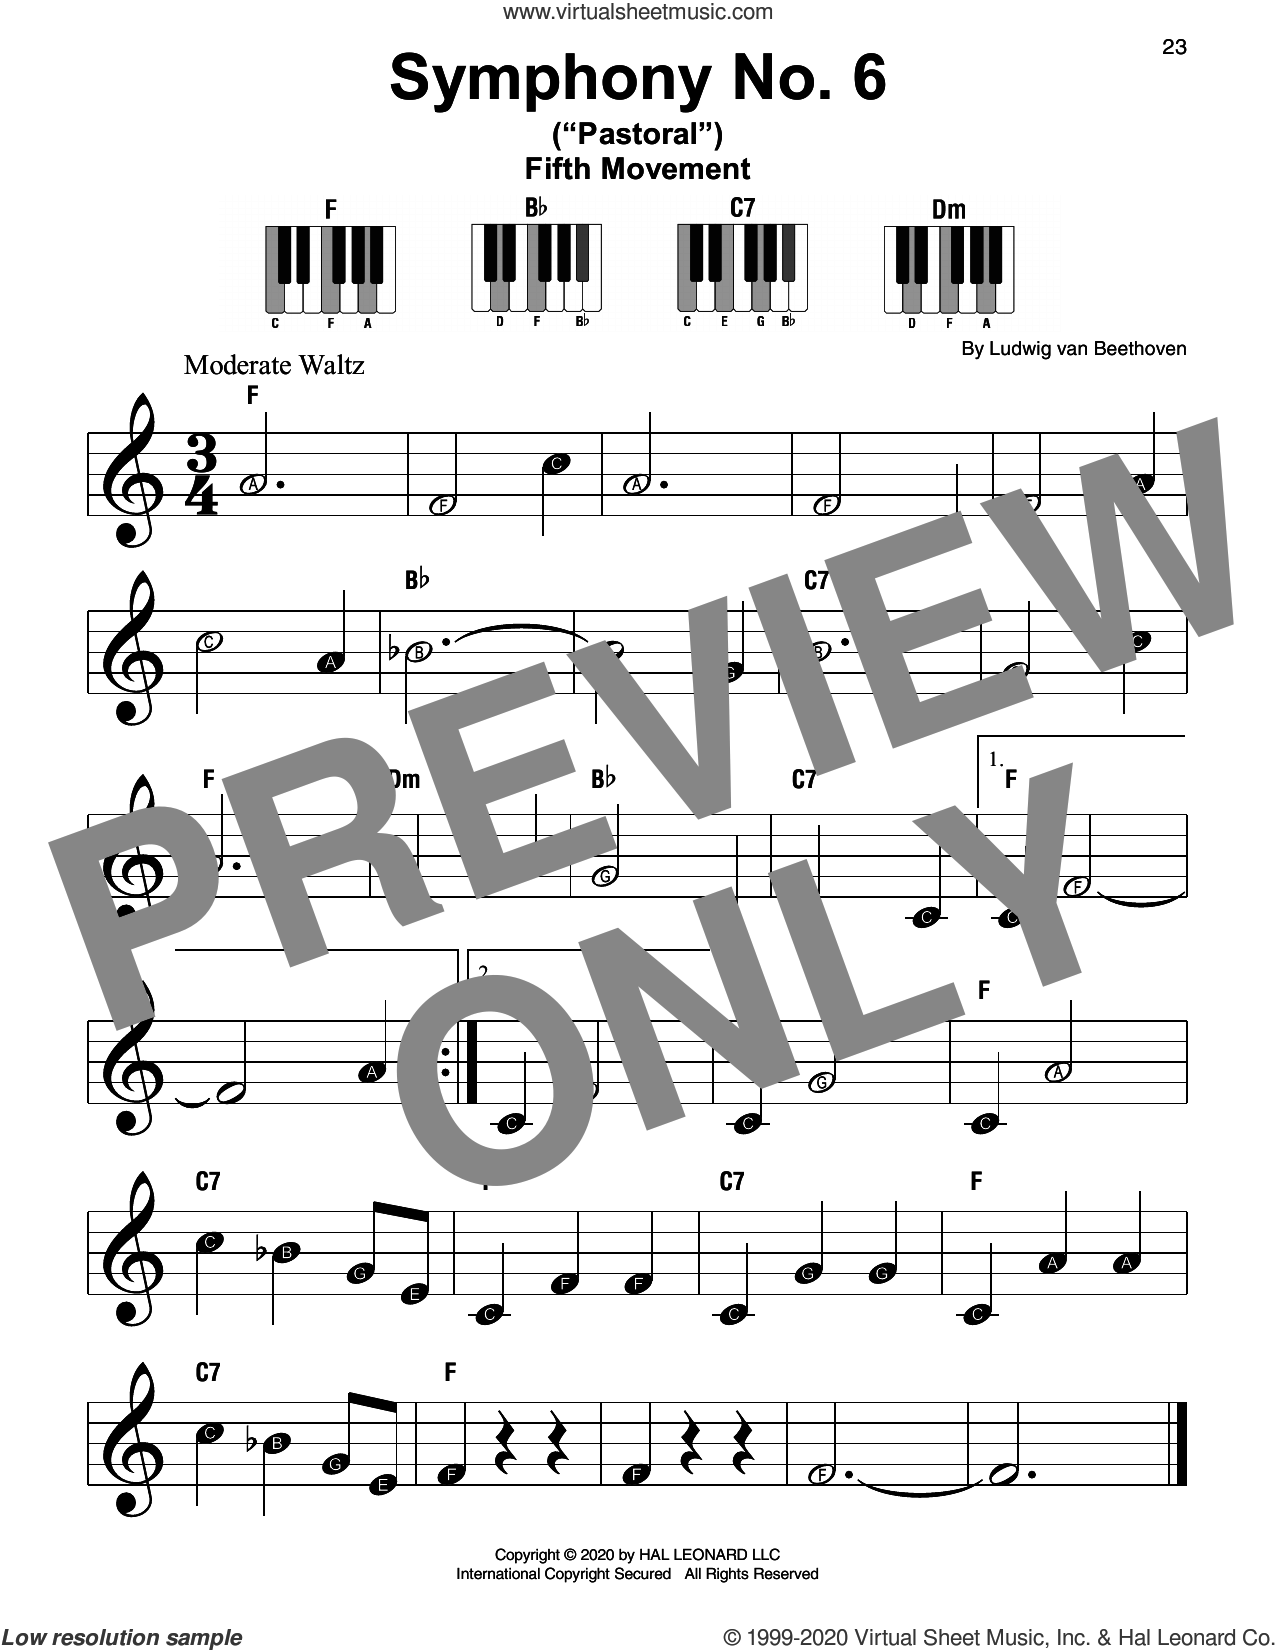 Symphony No. 6 In F Major ('Pastoral'), First Movement Excerpt sheet music for piano solo by Ludwig van Beethoven, classical score, beginner skill level